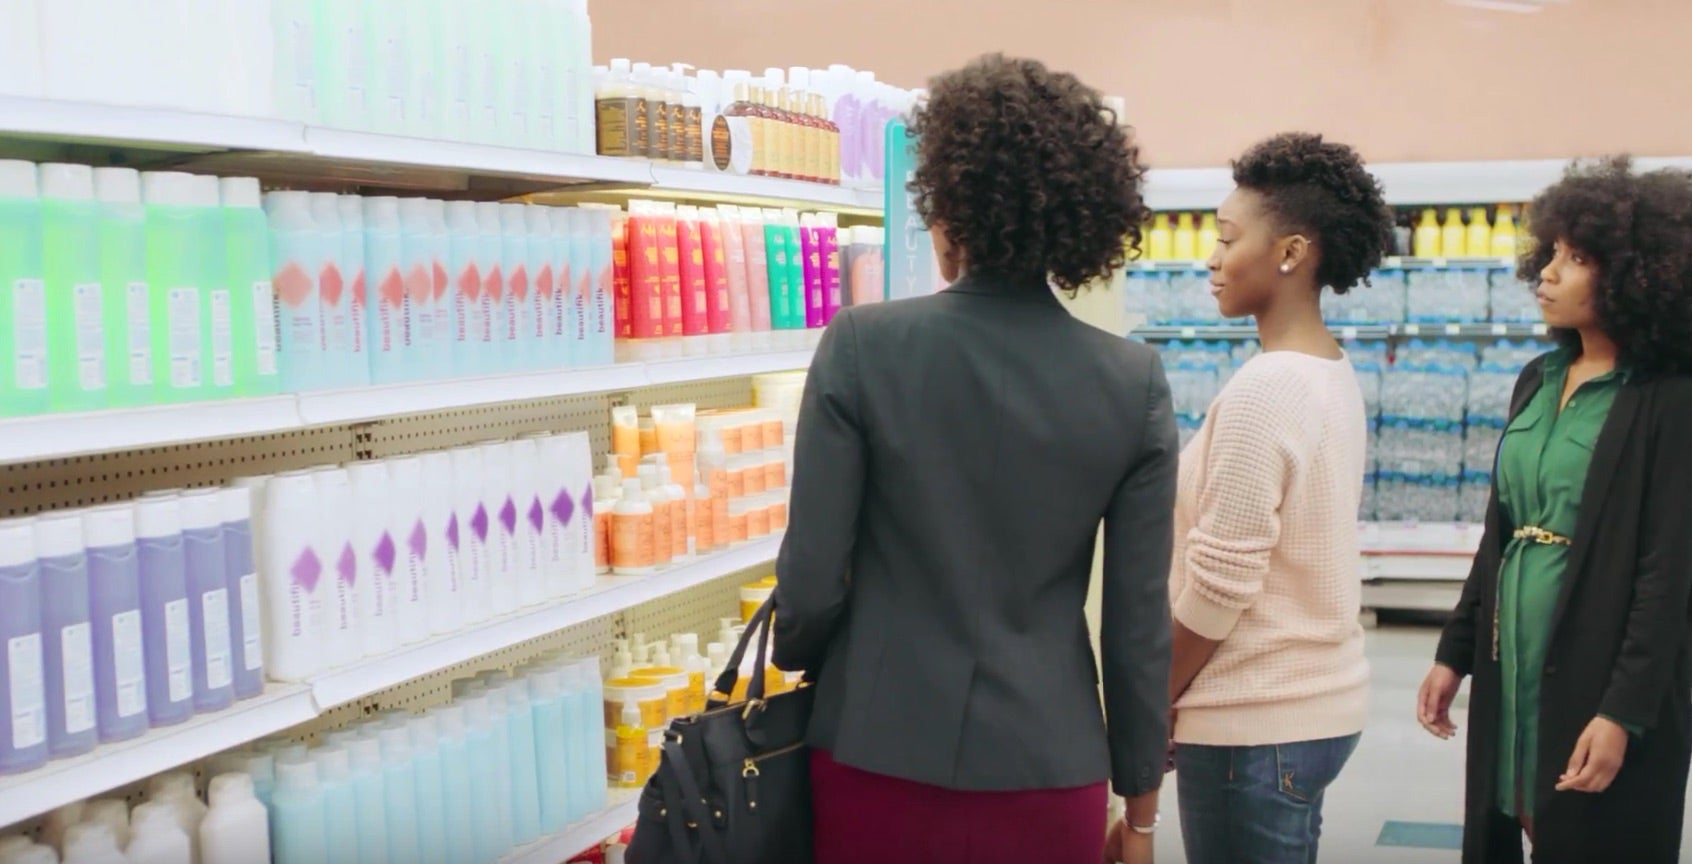 SheaMoisture Launches #BreakTheWalls Campaign To Highlight Division In Beauty Aisles